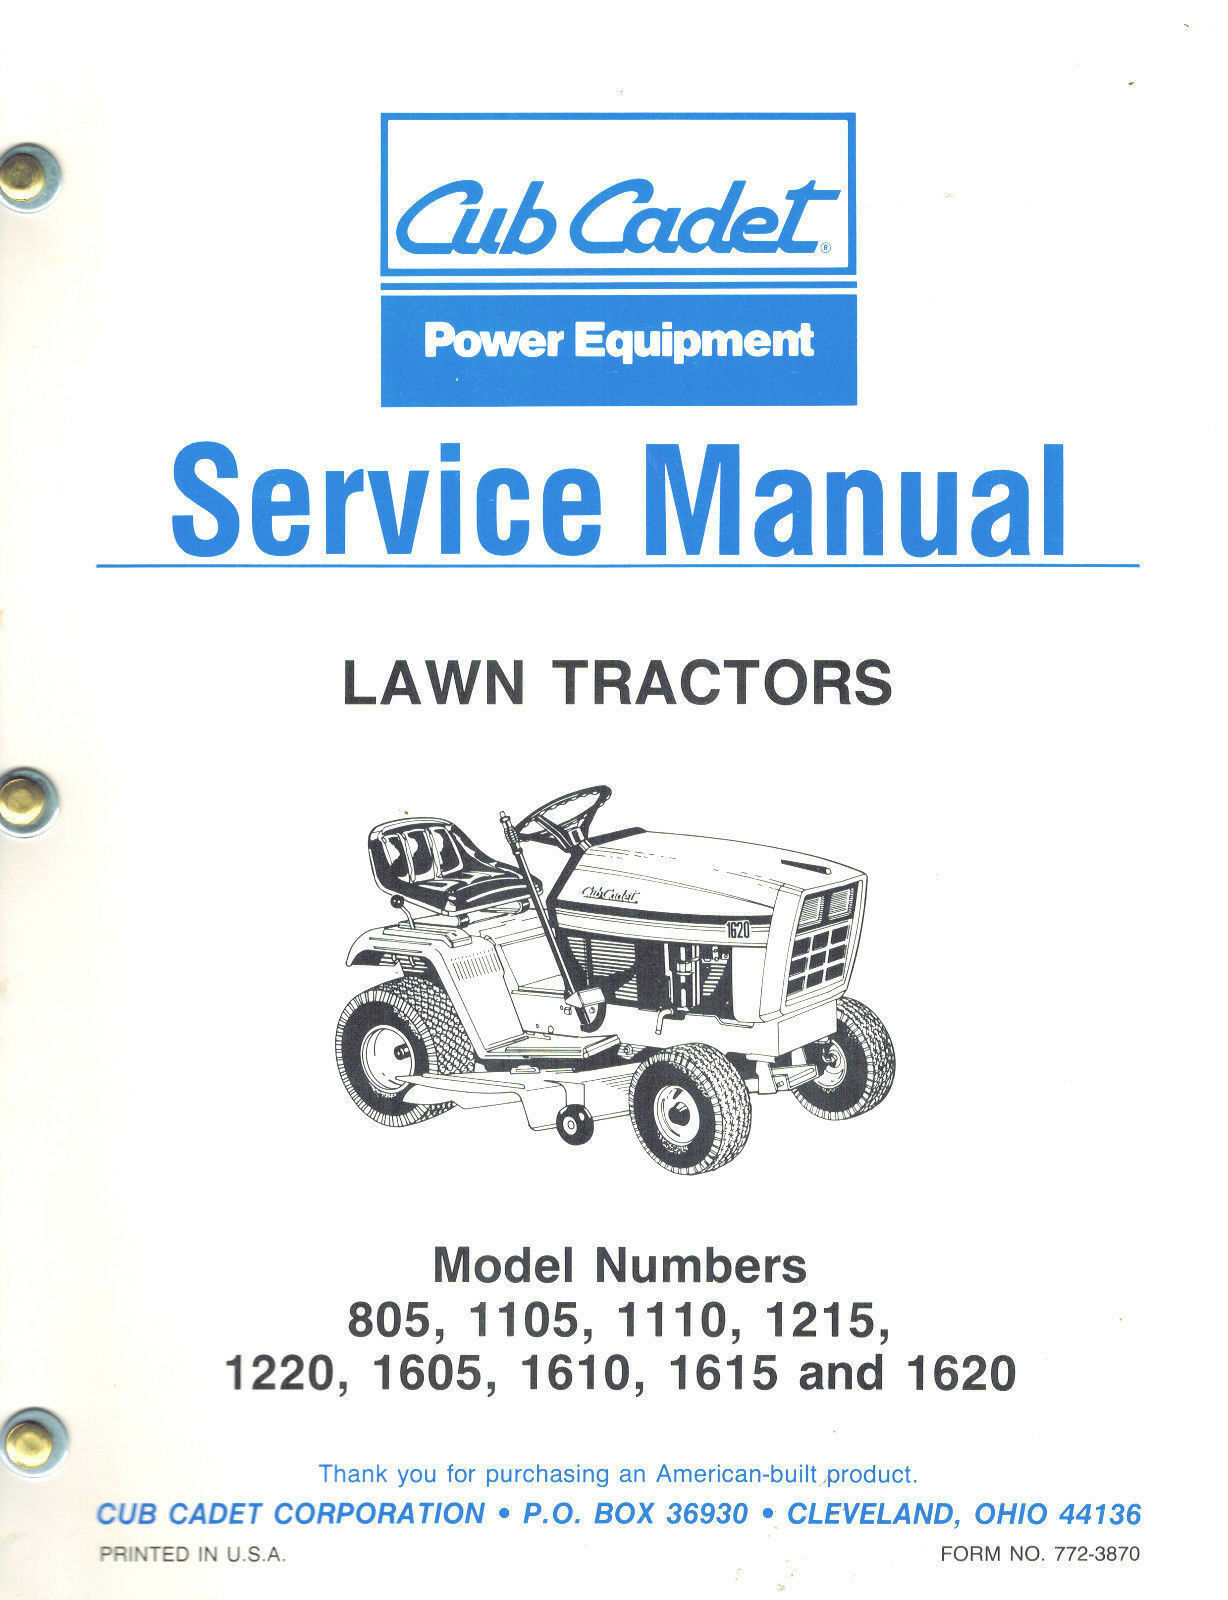 Cub Cadet 1220 Wiring Diagram Diagrams 1620 Schematic Drive Belt Tractor Engine Electrical Parts